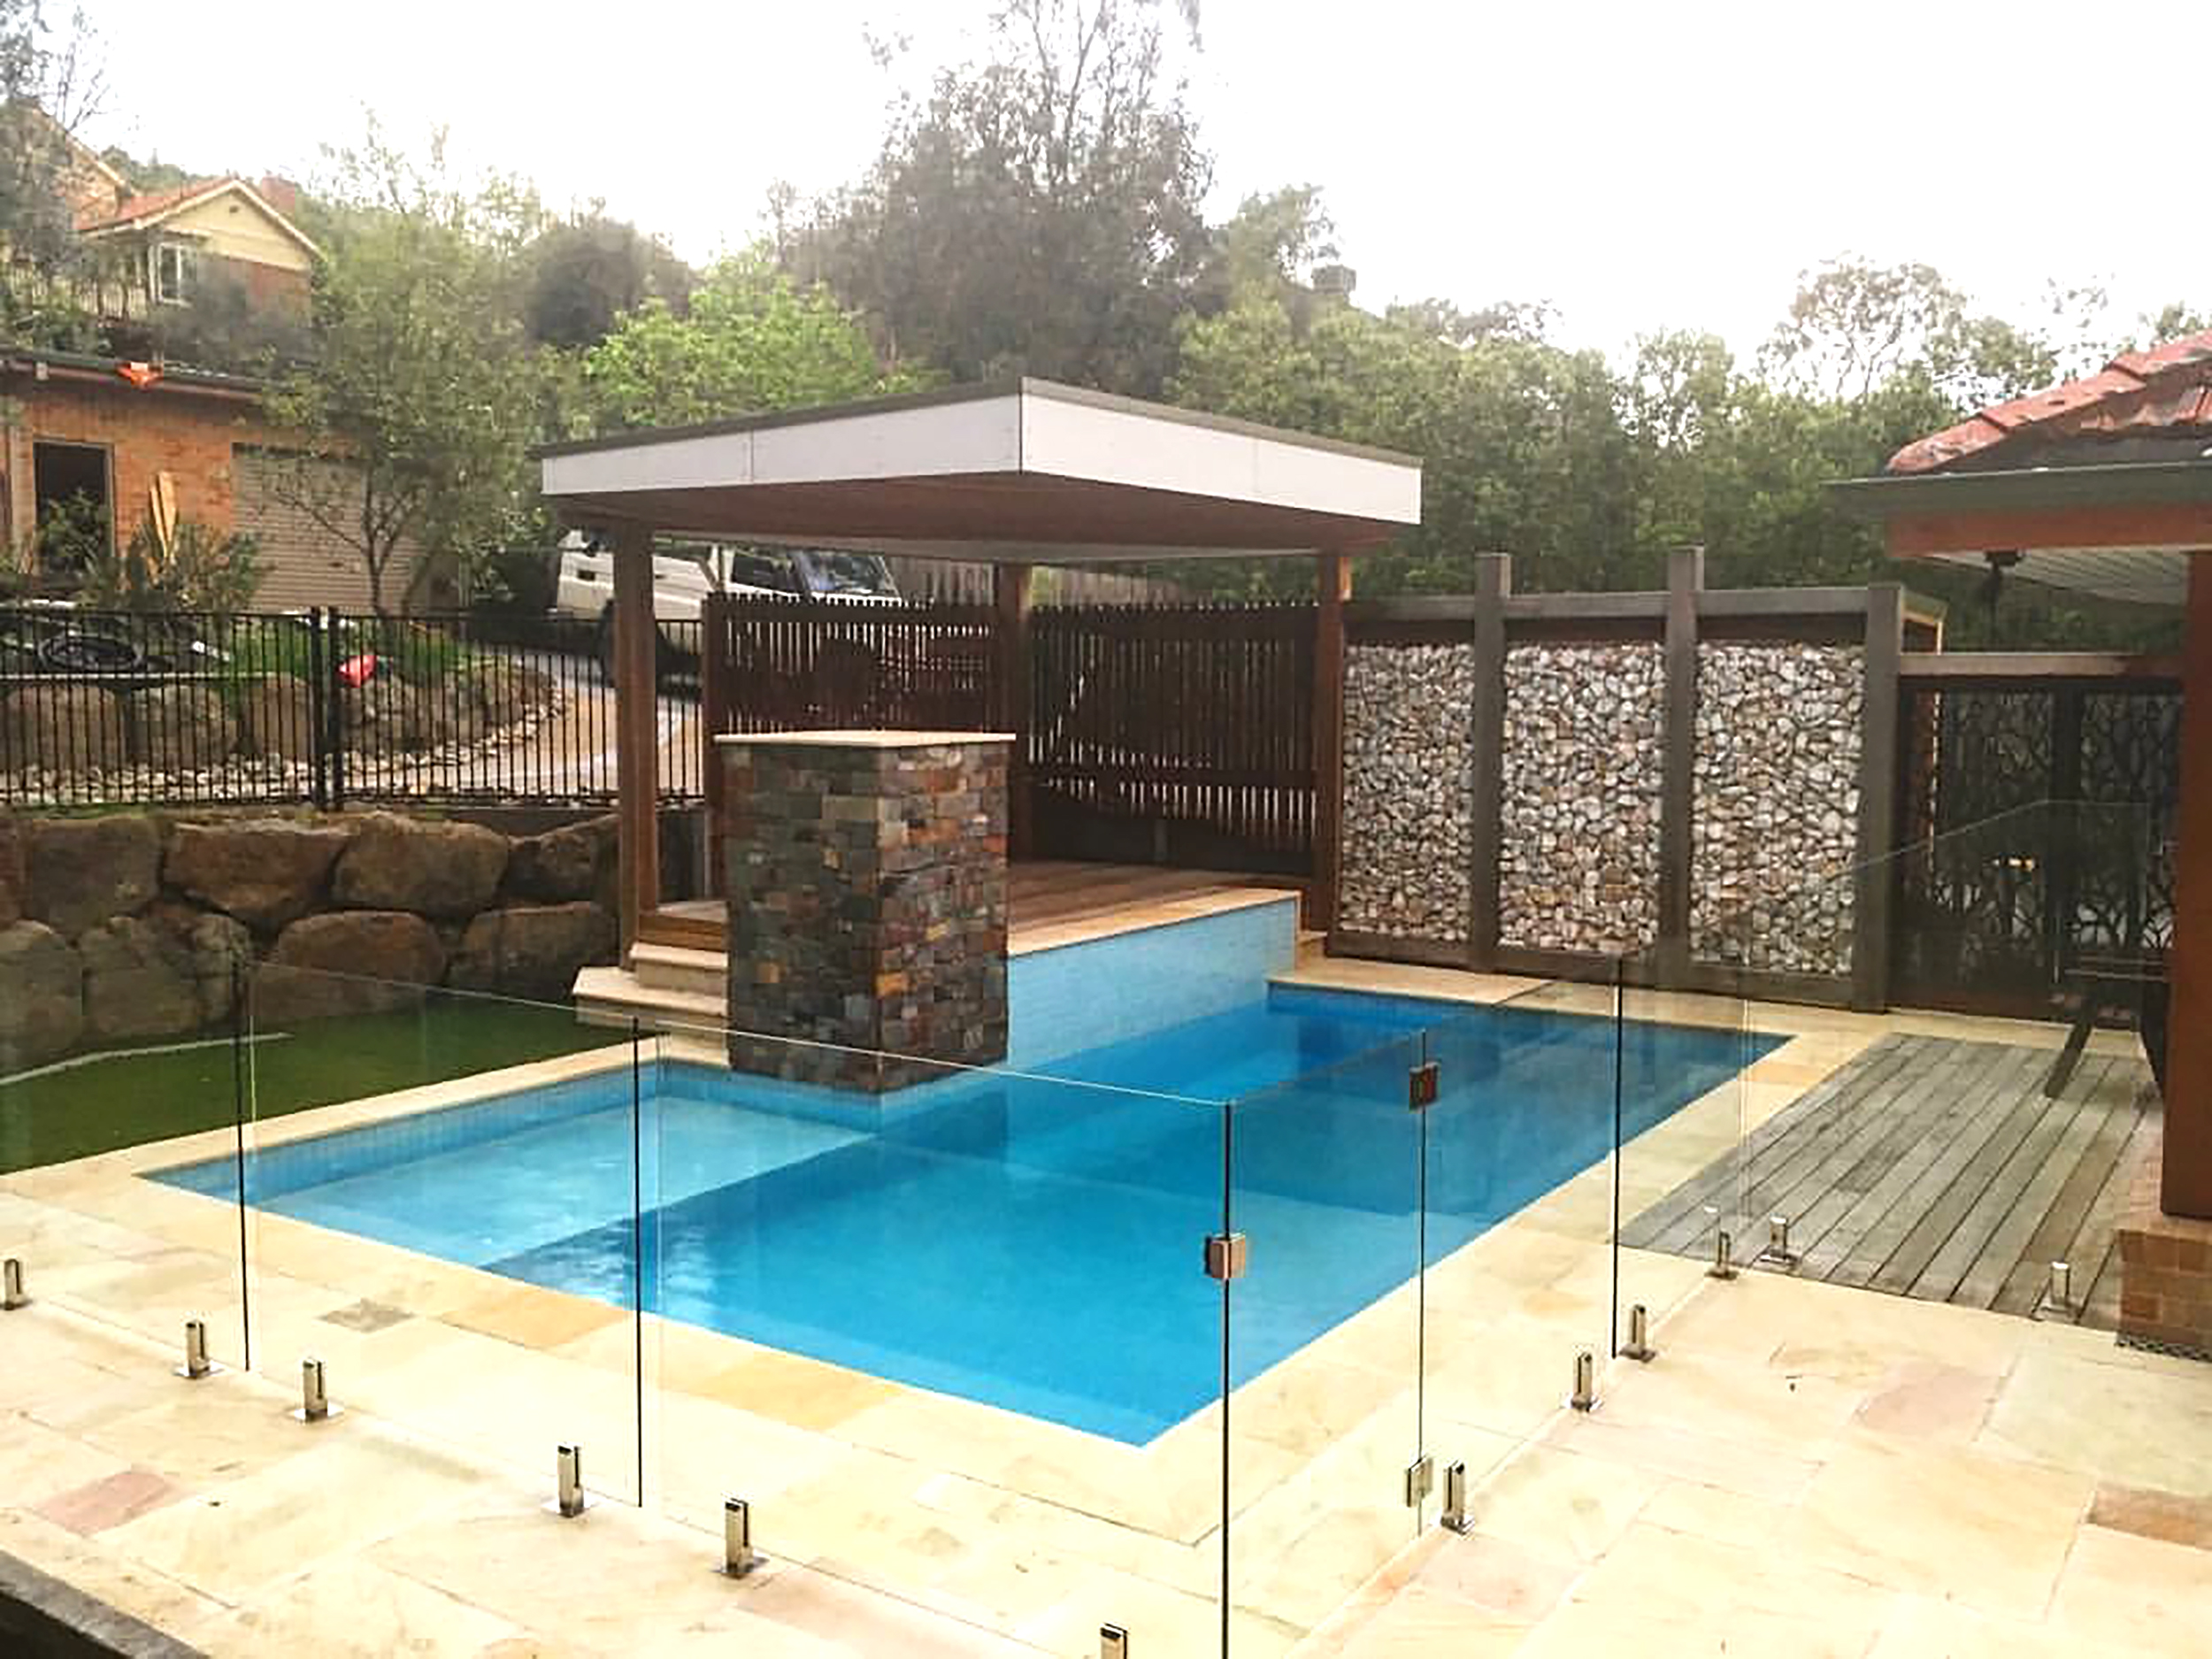 Rustic Outback Pillar and Kimberley Beige Sandstone around Pool Area